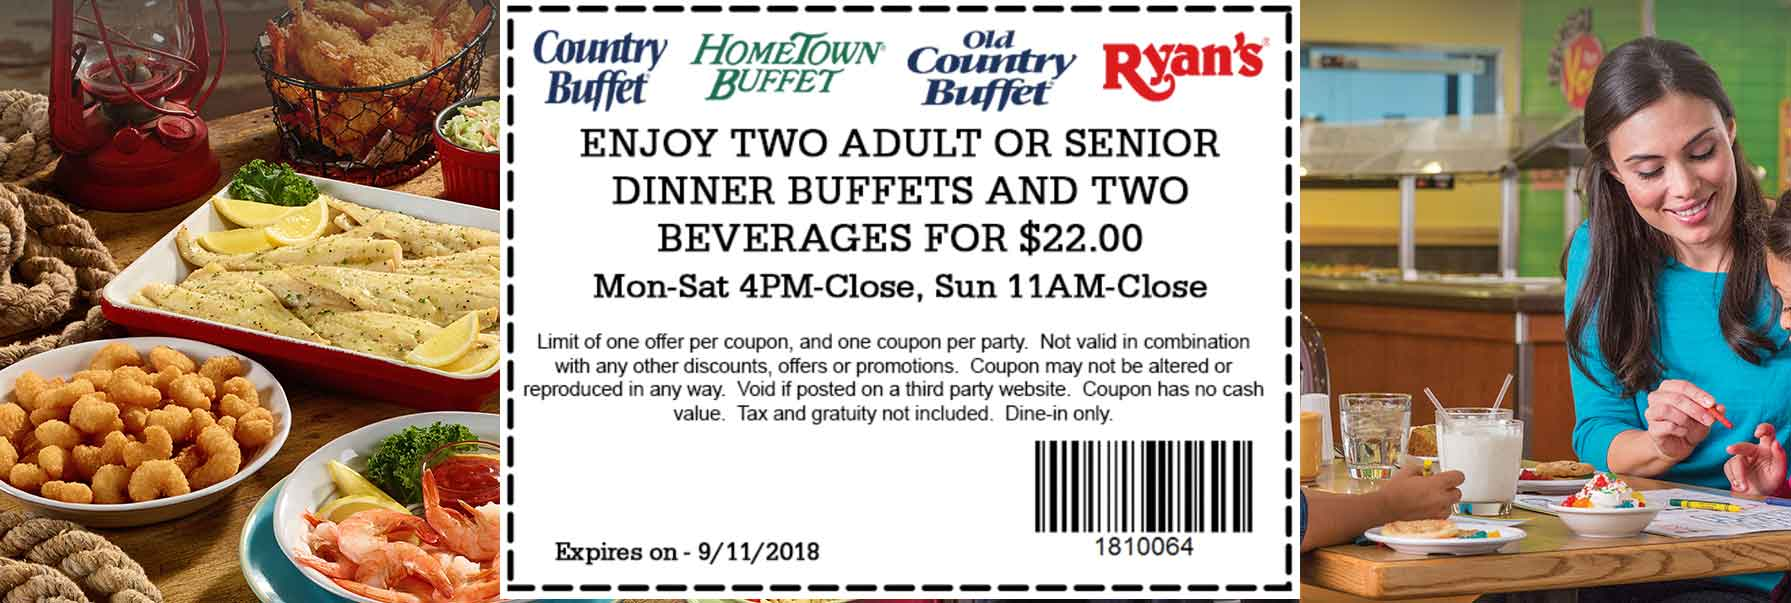 Hometown Buffet Coupon May 2019 2 dinners + drinks = $22 at Ryans, HomeTown Buffet & Old Country Buffet